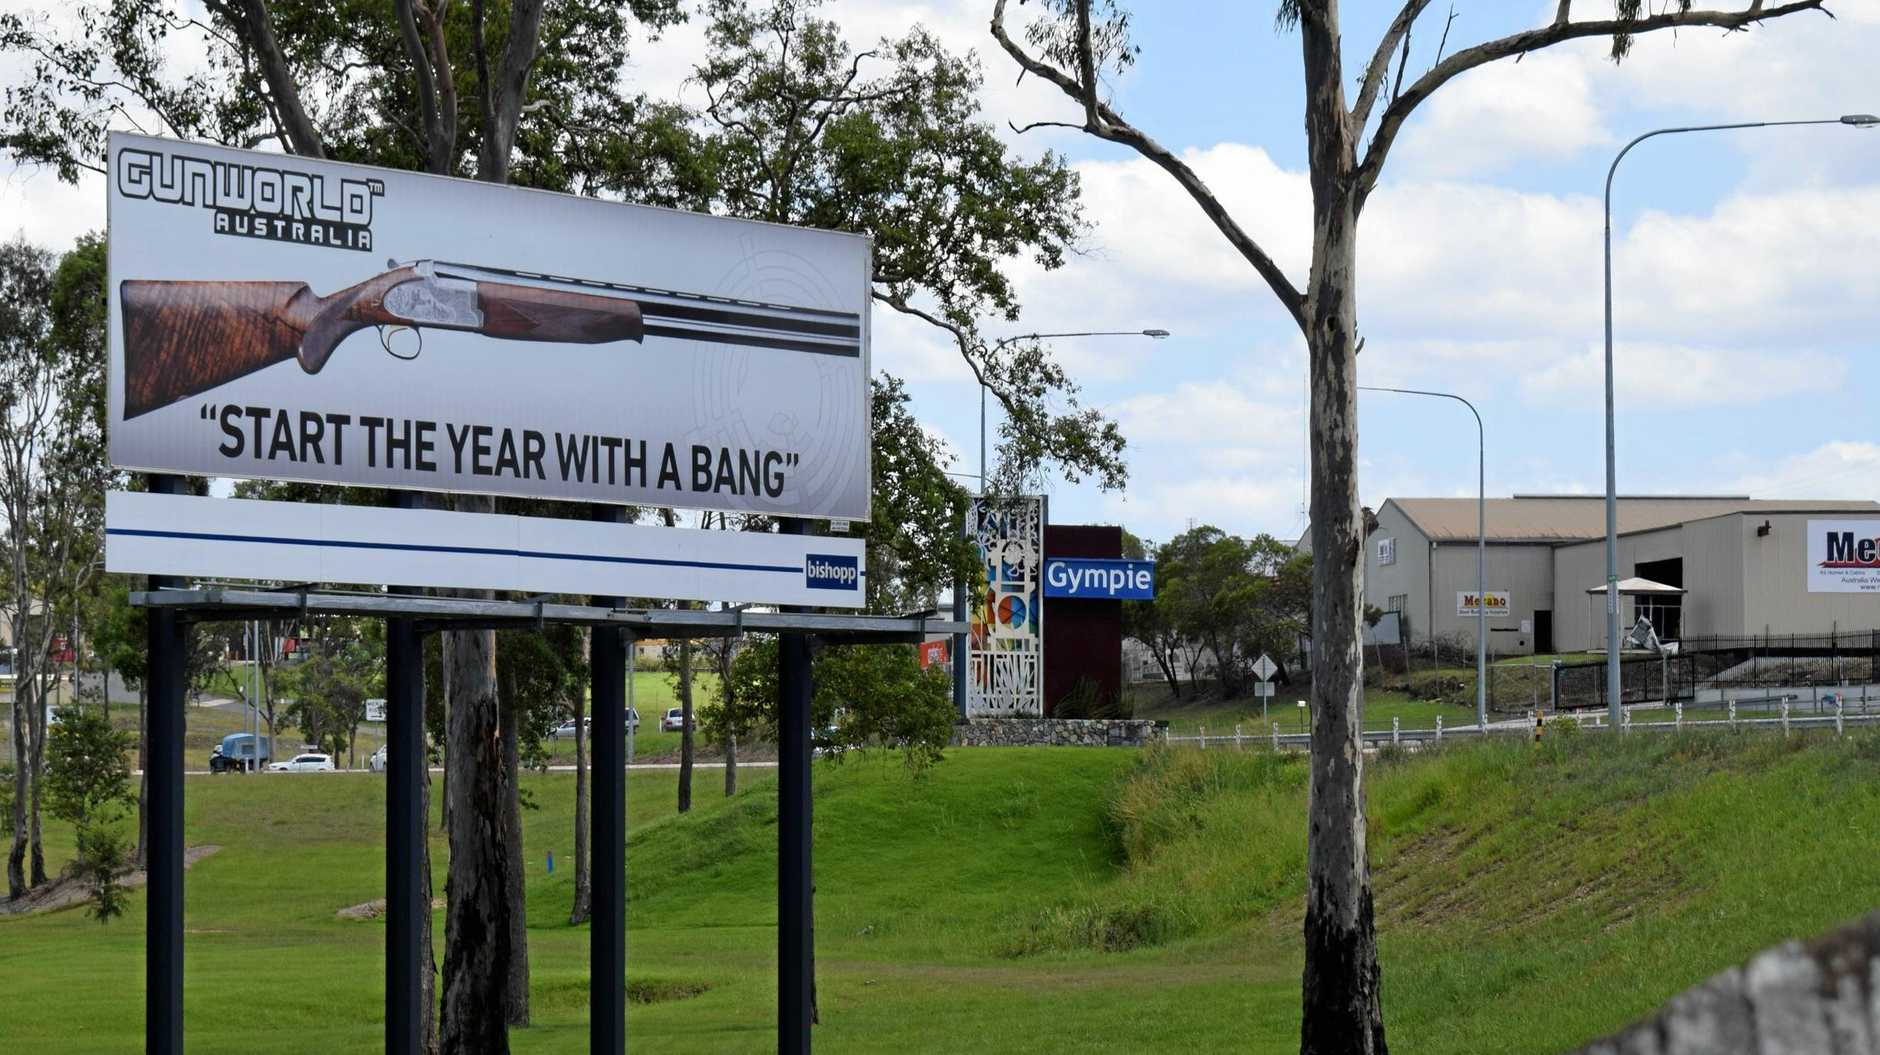 Logan- based Gun World Australia's new billboard at the northbound entrance to Gympie, the latest campaign move by a company whose ads have stirred controversy throughout the year.